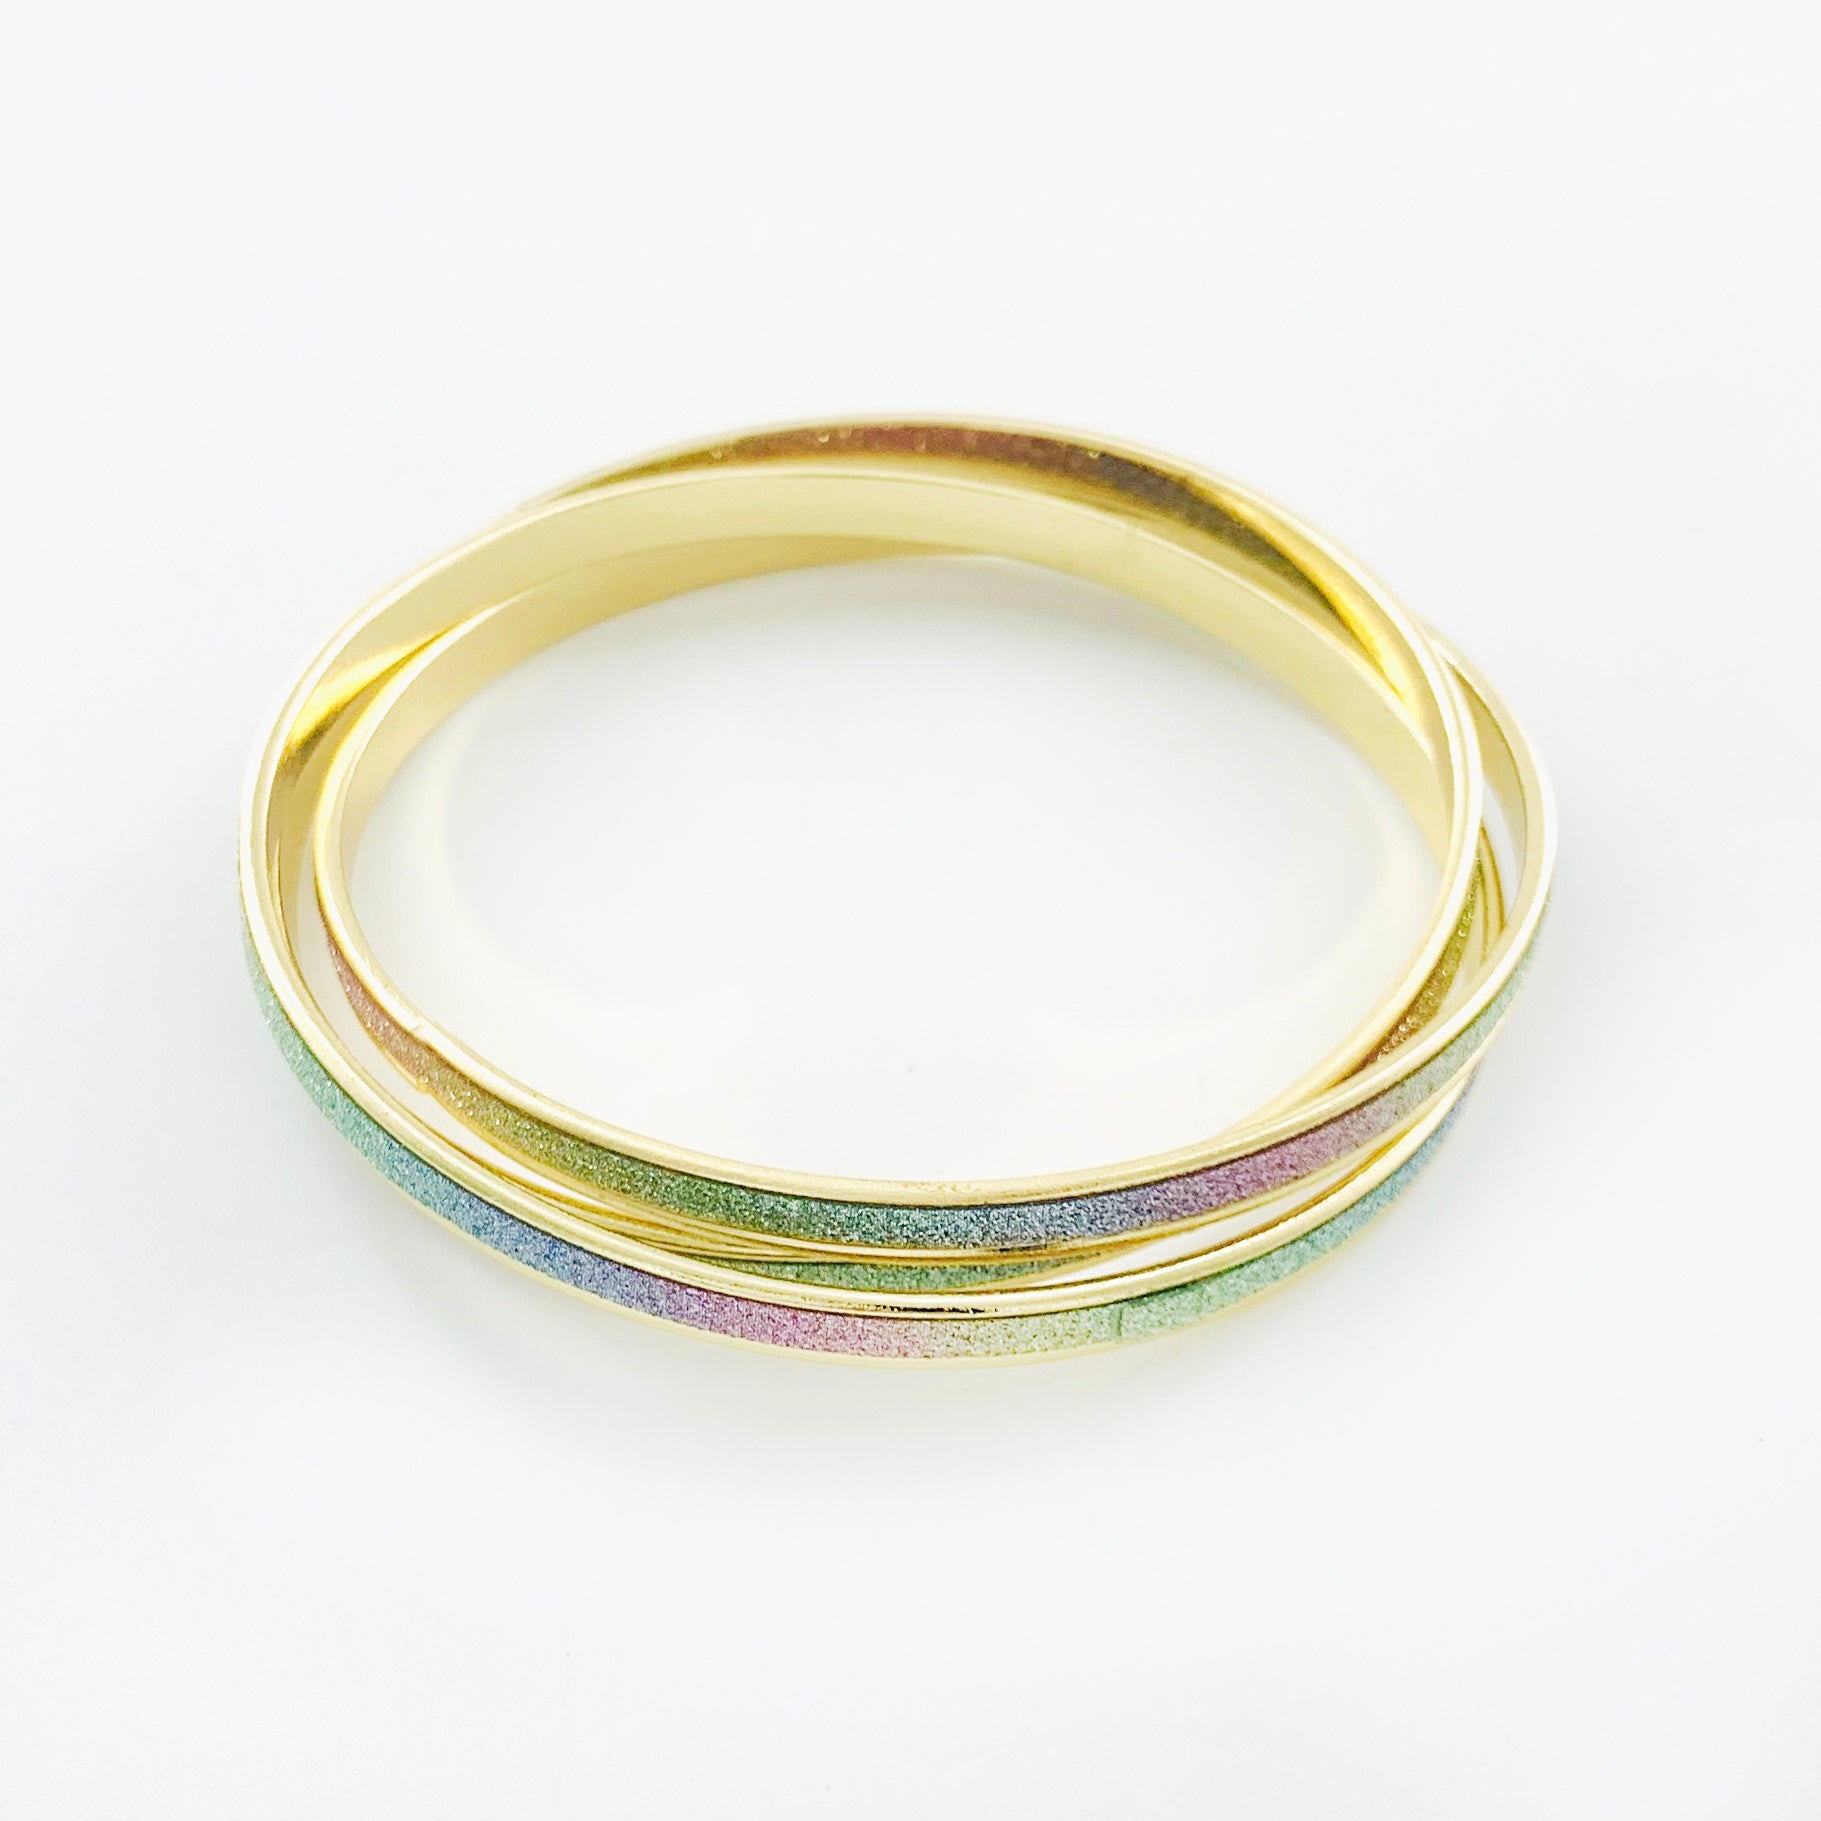 Thin gold bangles with rainbow glitter finish